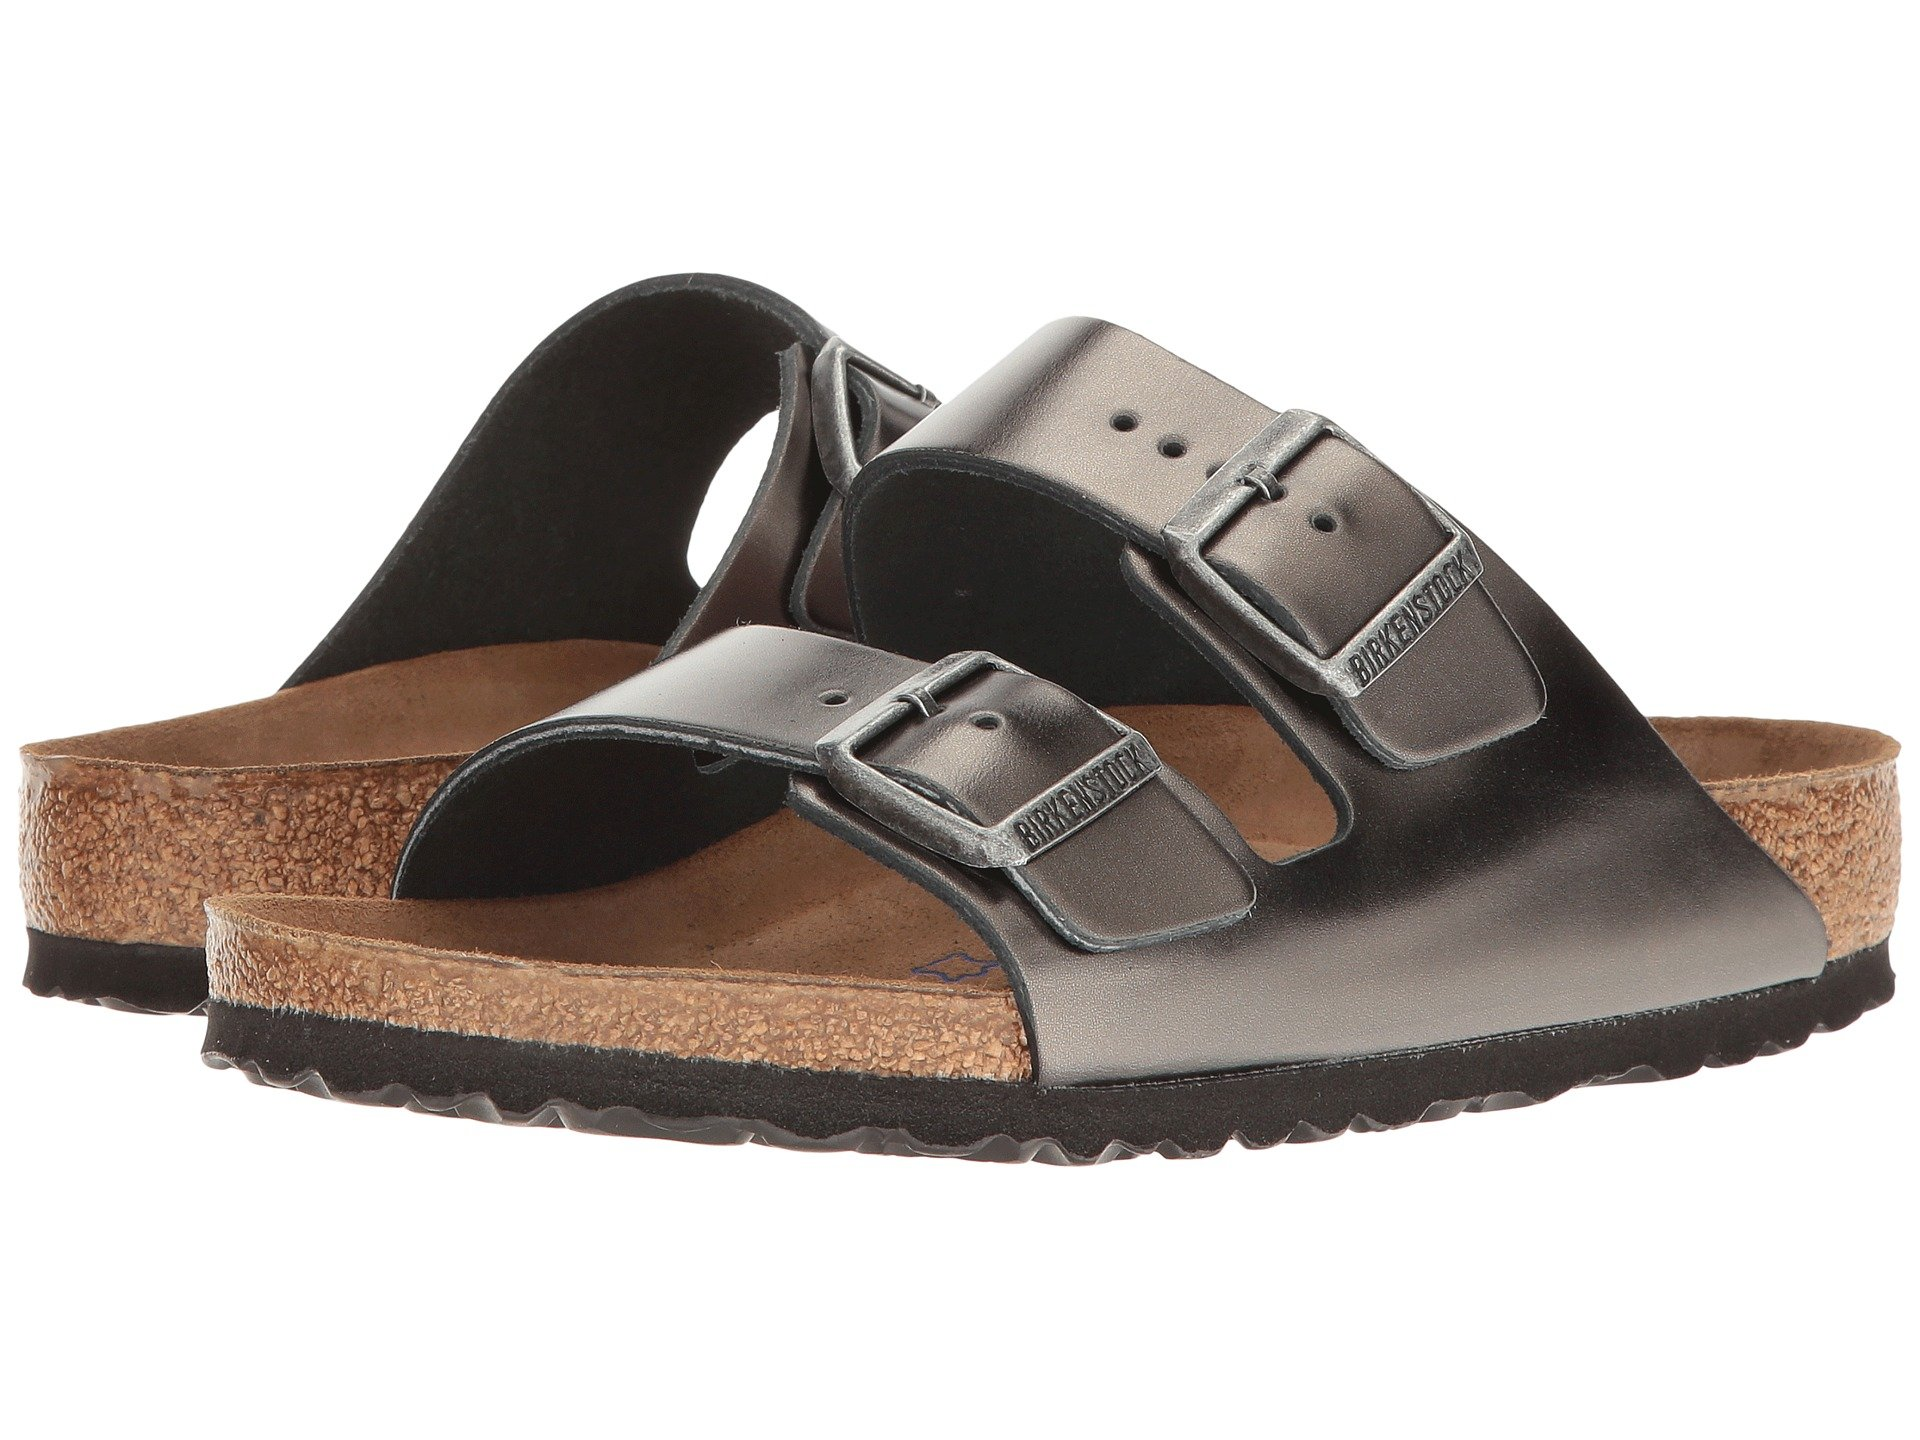 b8b6e491a7bc Birkenstock. Arizona Soft Footbed - Leather (Unisex).  134.95. 5Rated 5  stars. Metallic Anthracite Leather